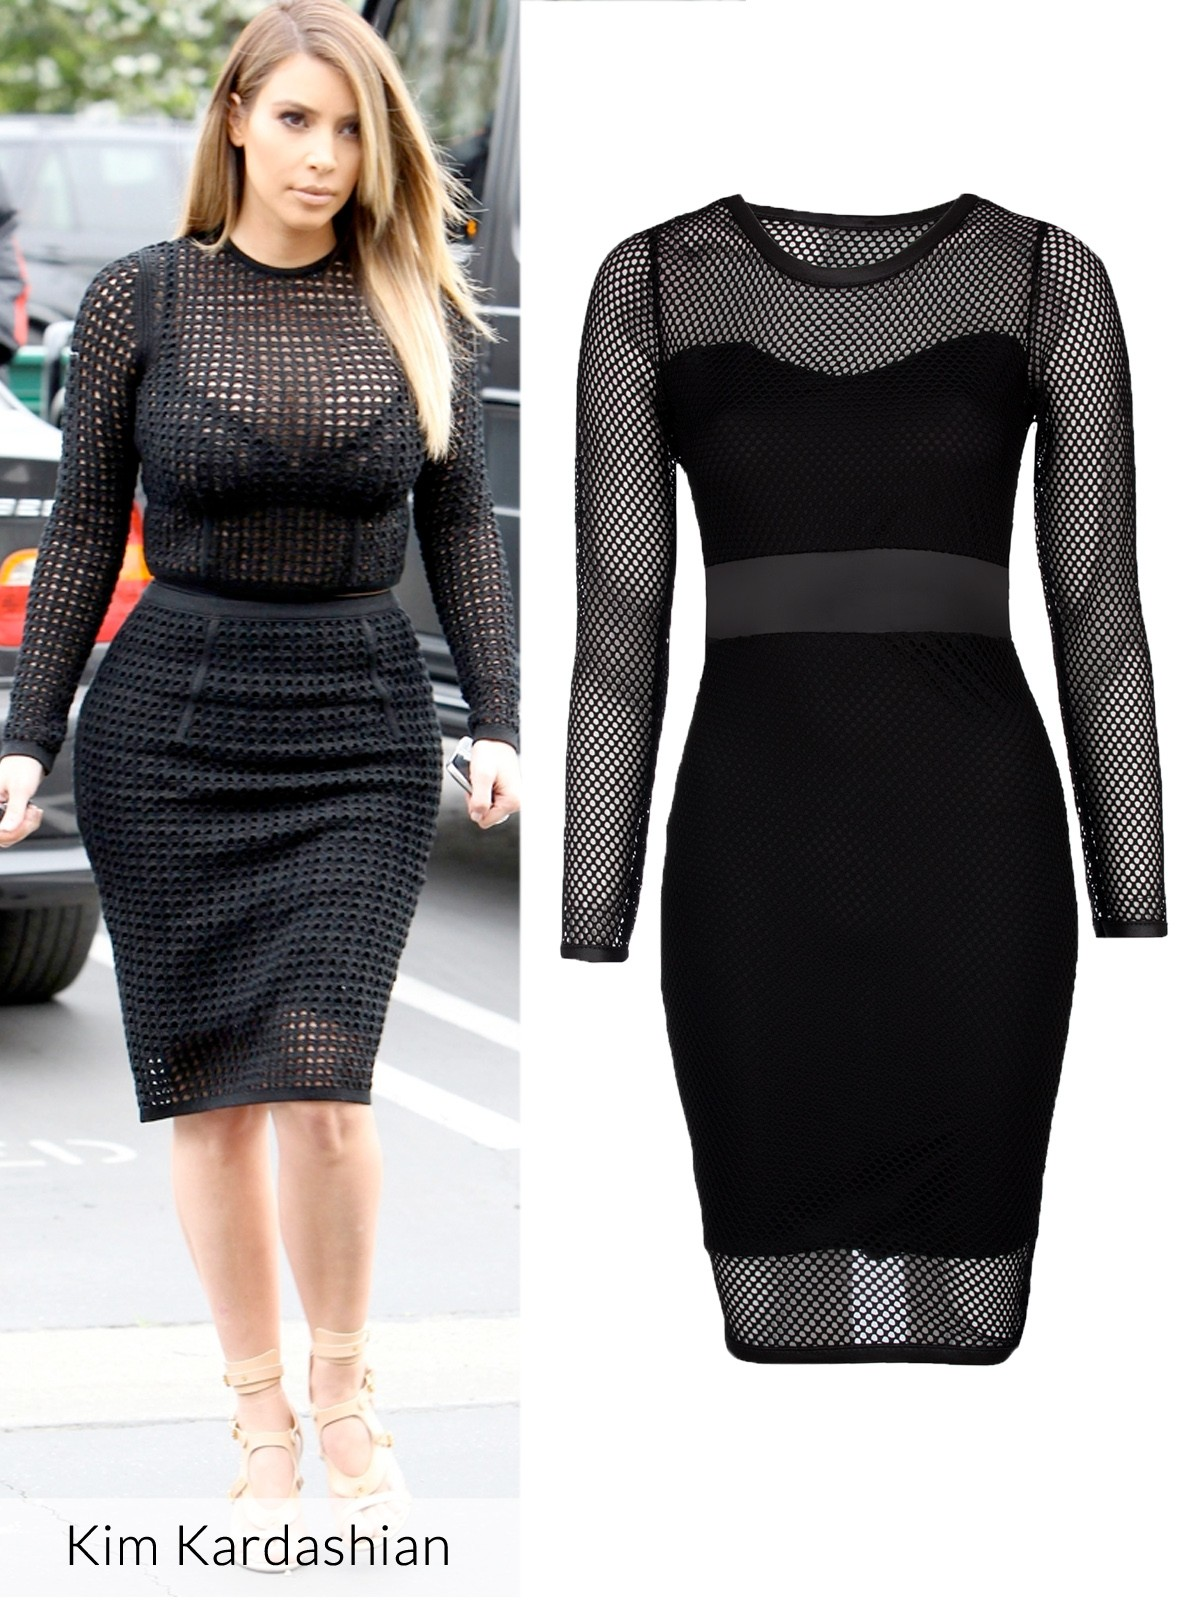 Kim Kardashian in the mesh dress